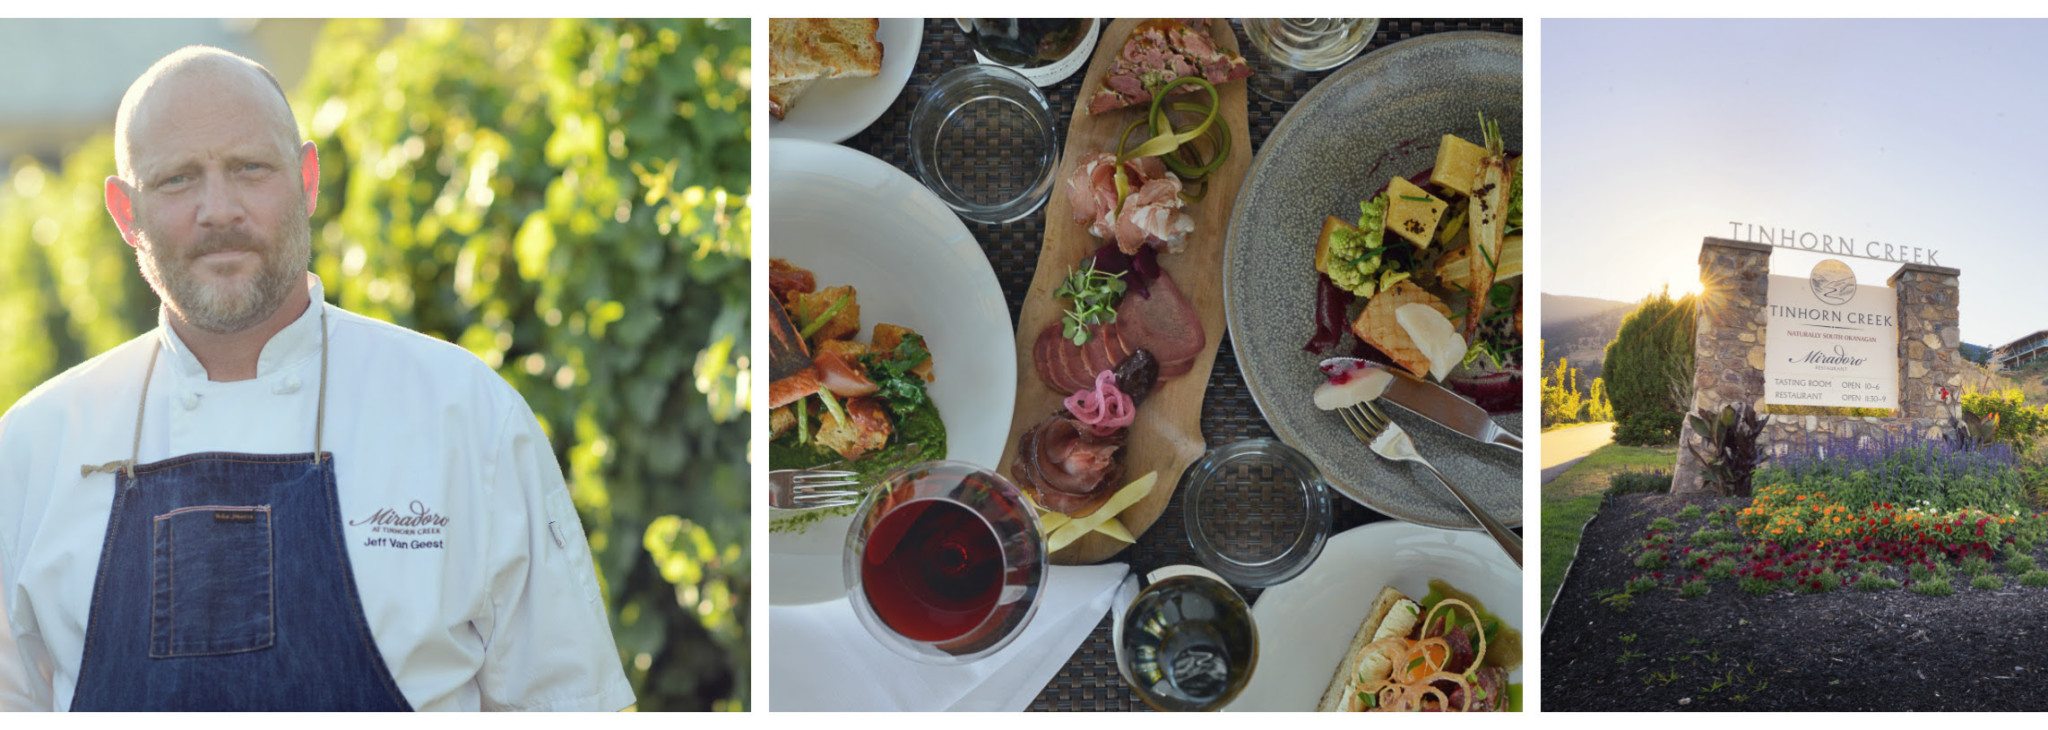 Miradoro Restaurant at Tinhorn Creek Vineyards reopens for the season – Winery restaurant offers special value $39 menu for March